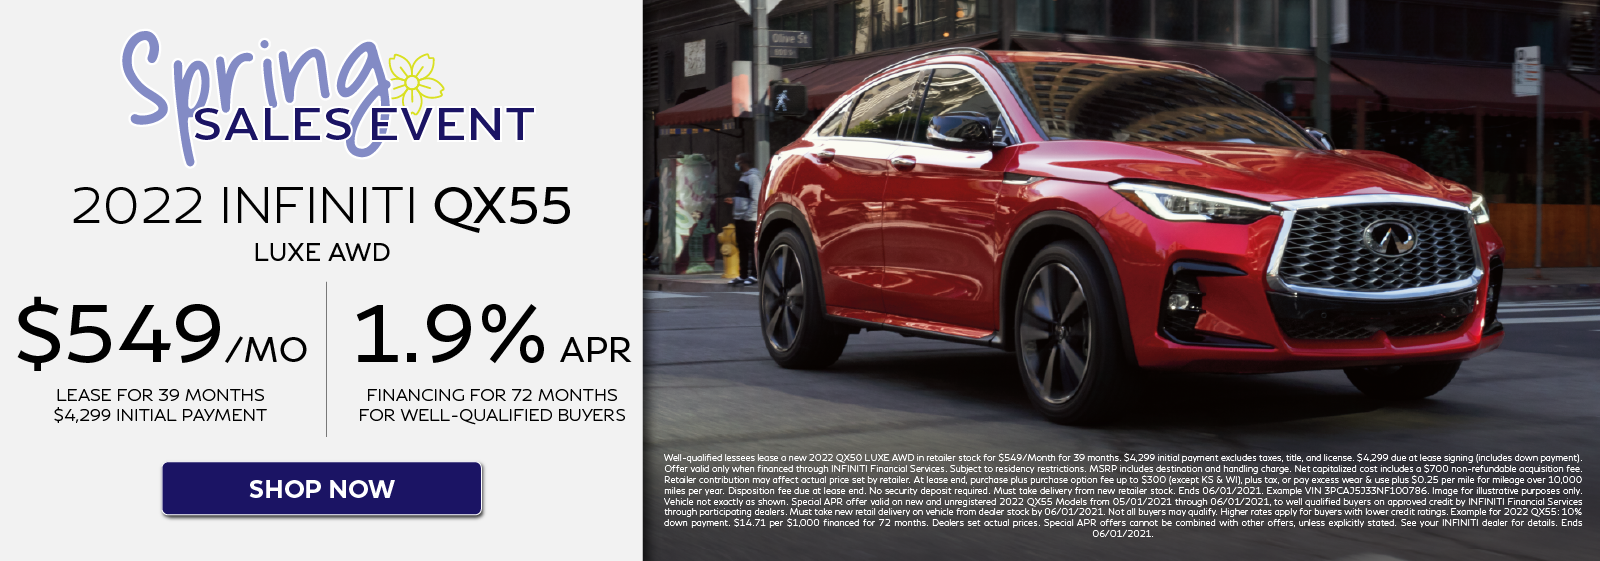 2022 QX55 LUXE AWD Lease and APR Offers. Click to shop now.